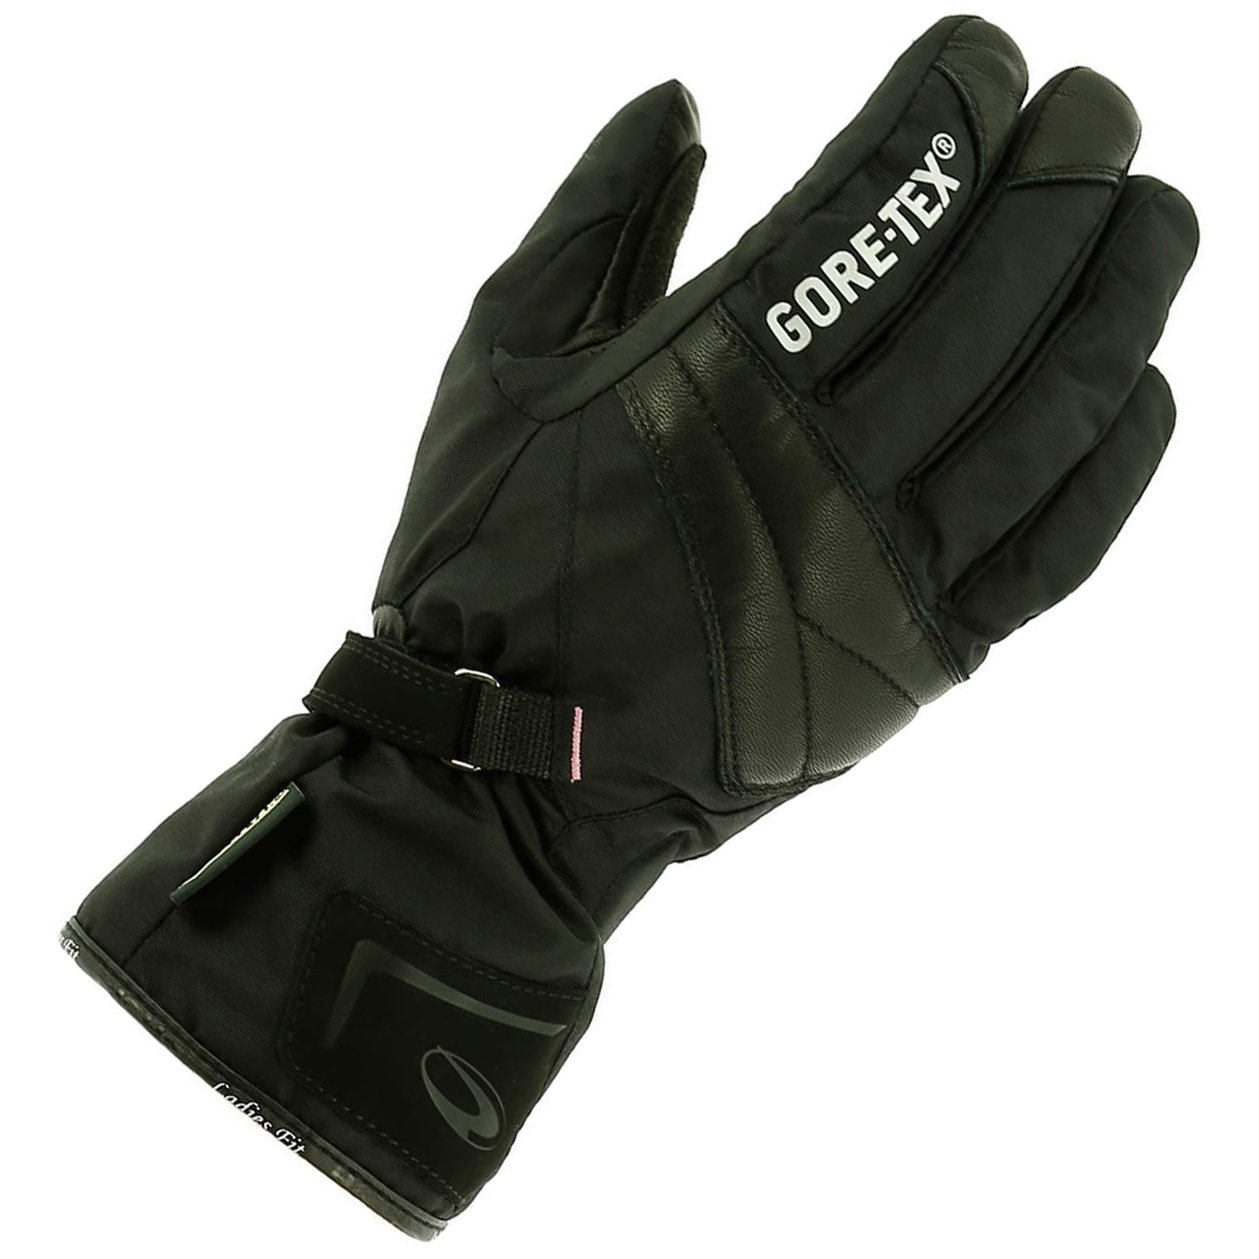 Richa Judy GTX Gore-Tex Waterproof Touring Motorbike Motorcycle Gloves - Black 15415033107629